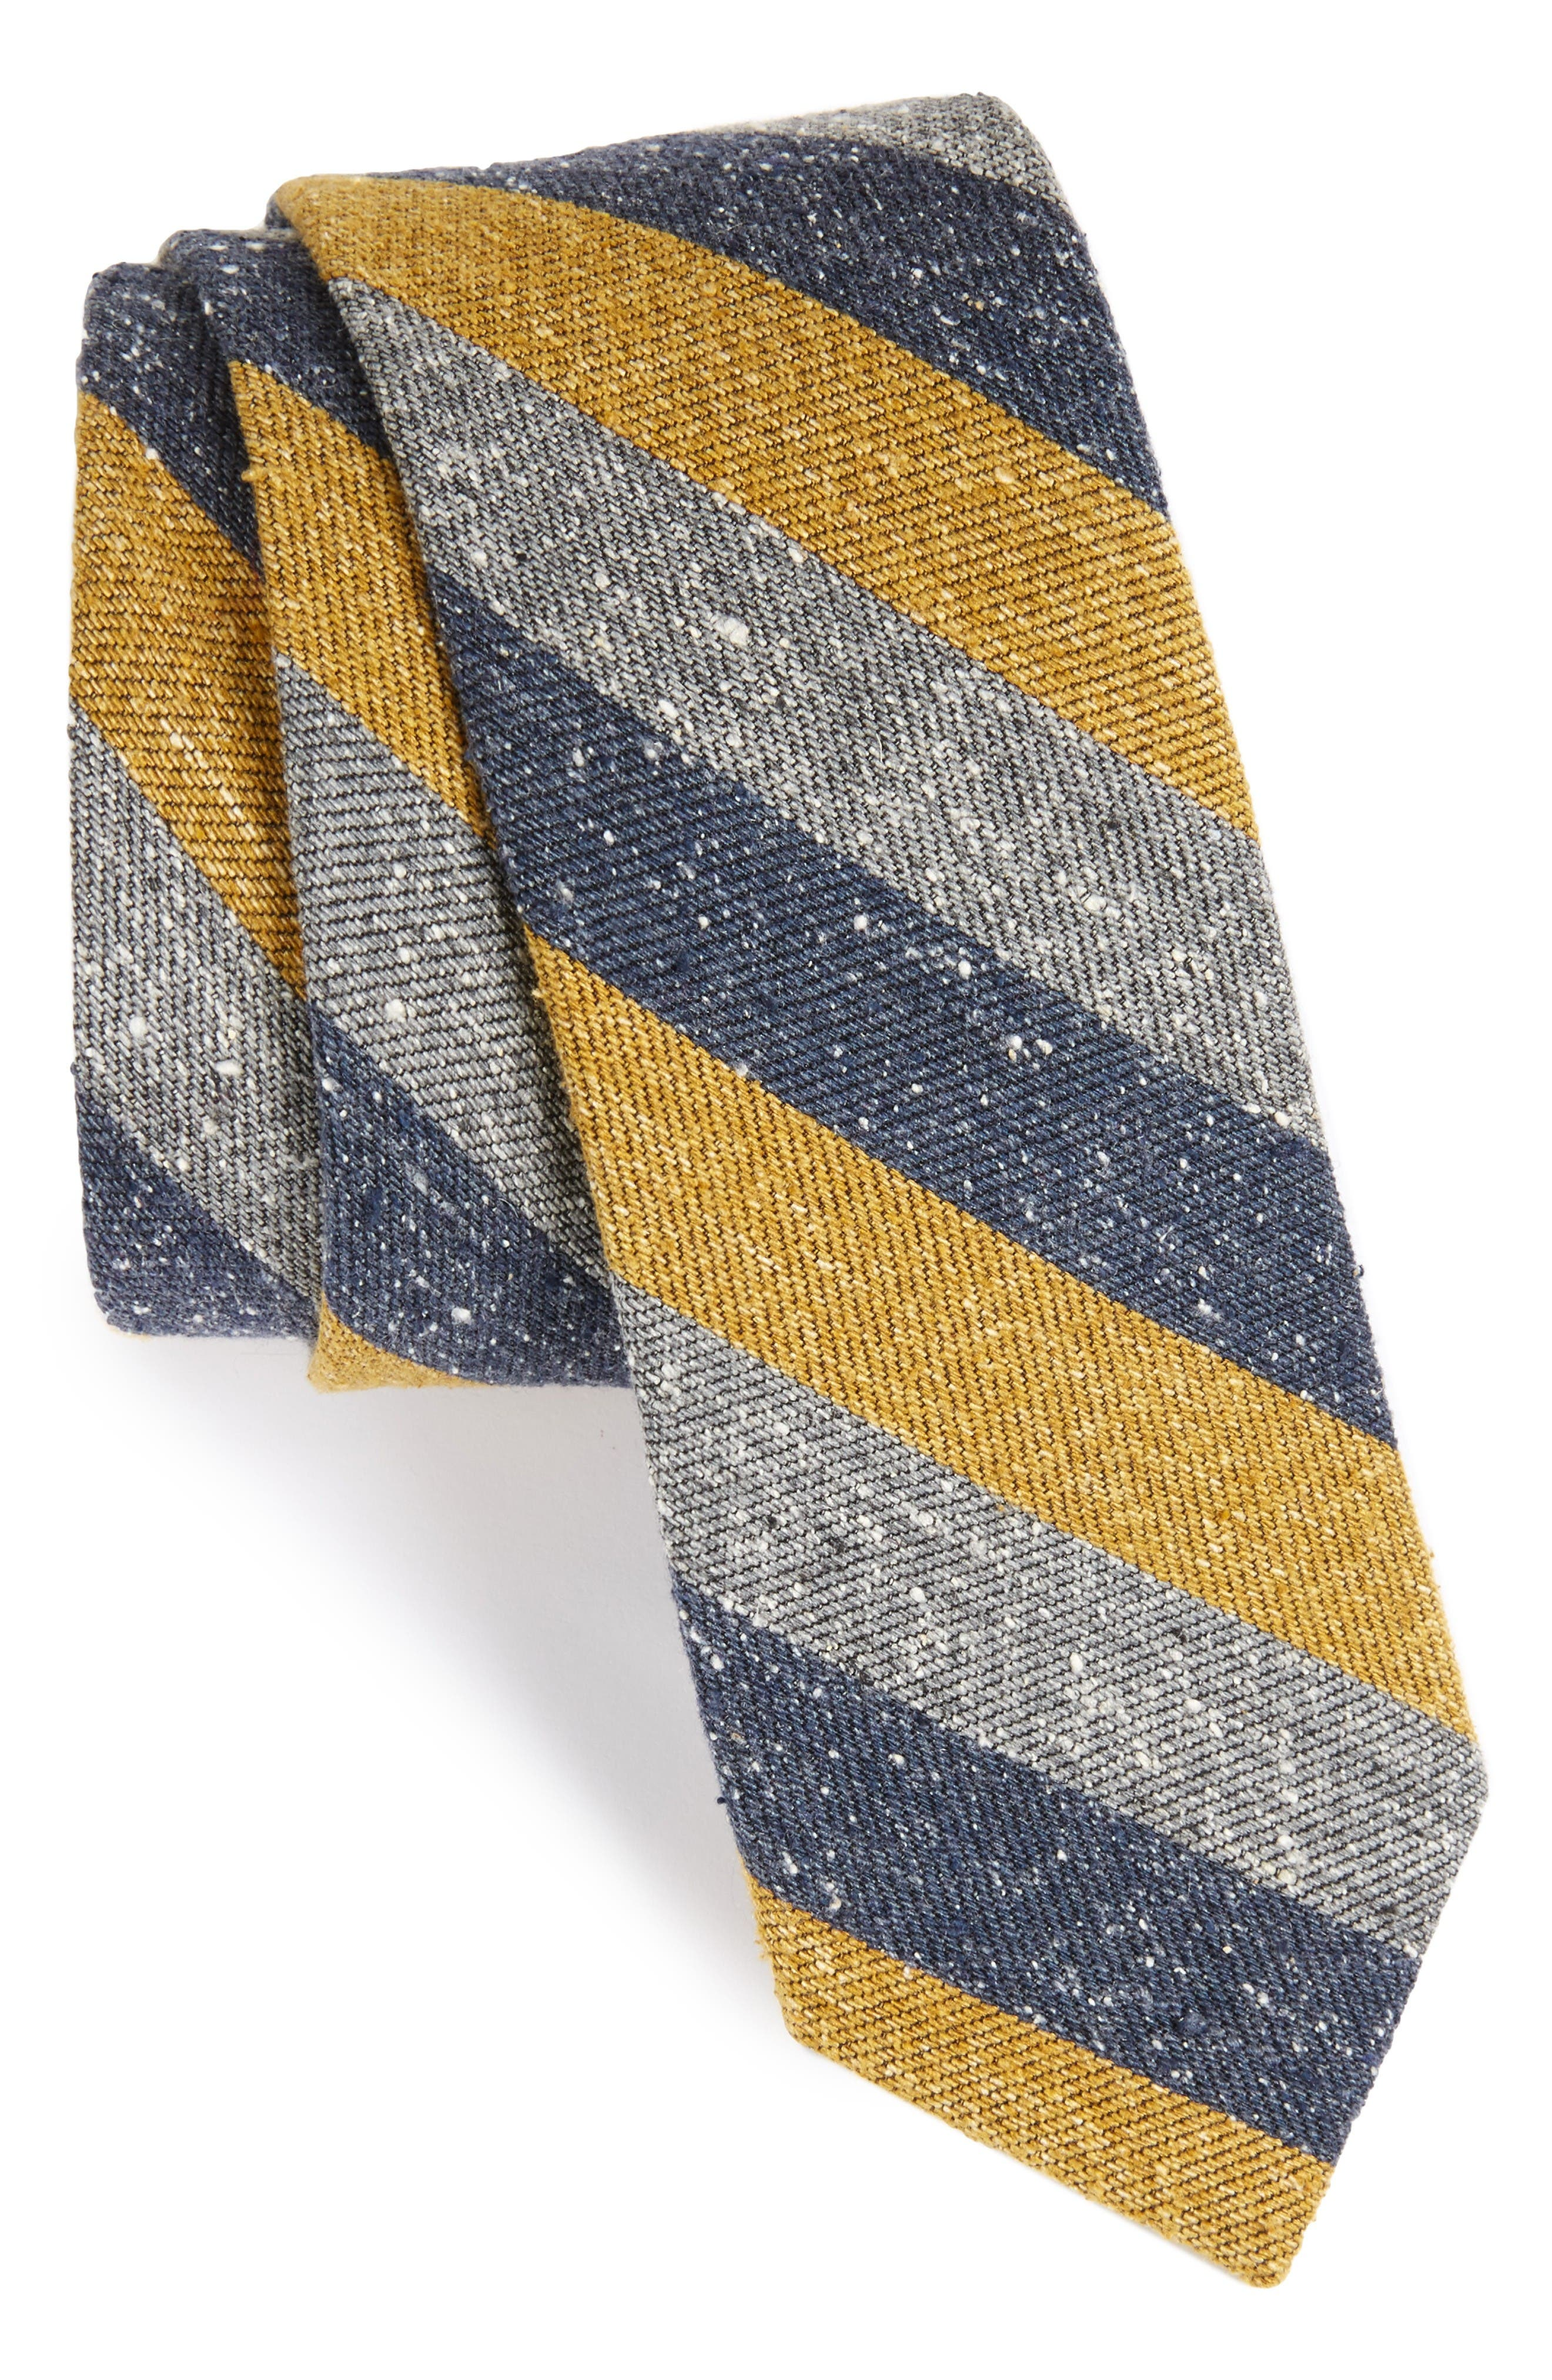 Alternate Image 1 Selected - The Tie Bar Varios Stripe Silk Skinny Tie